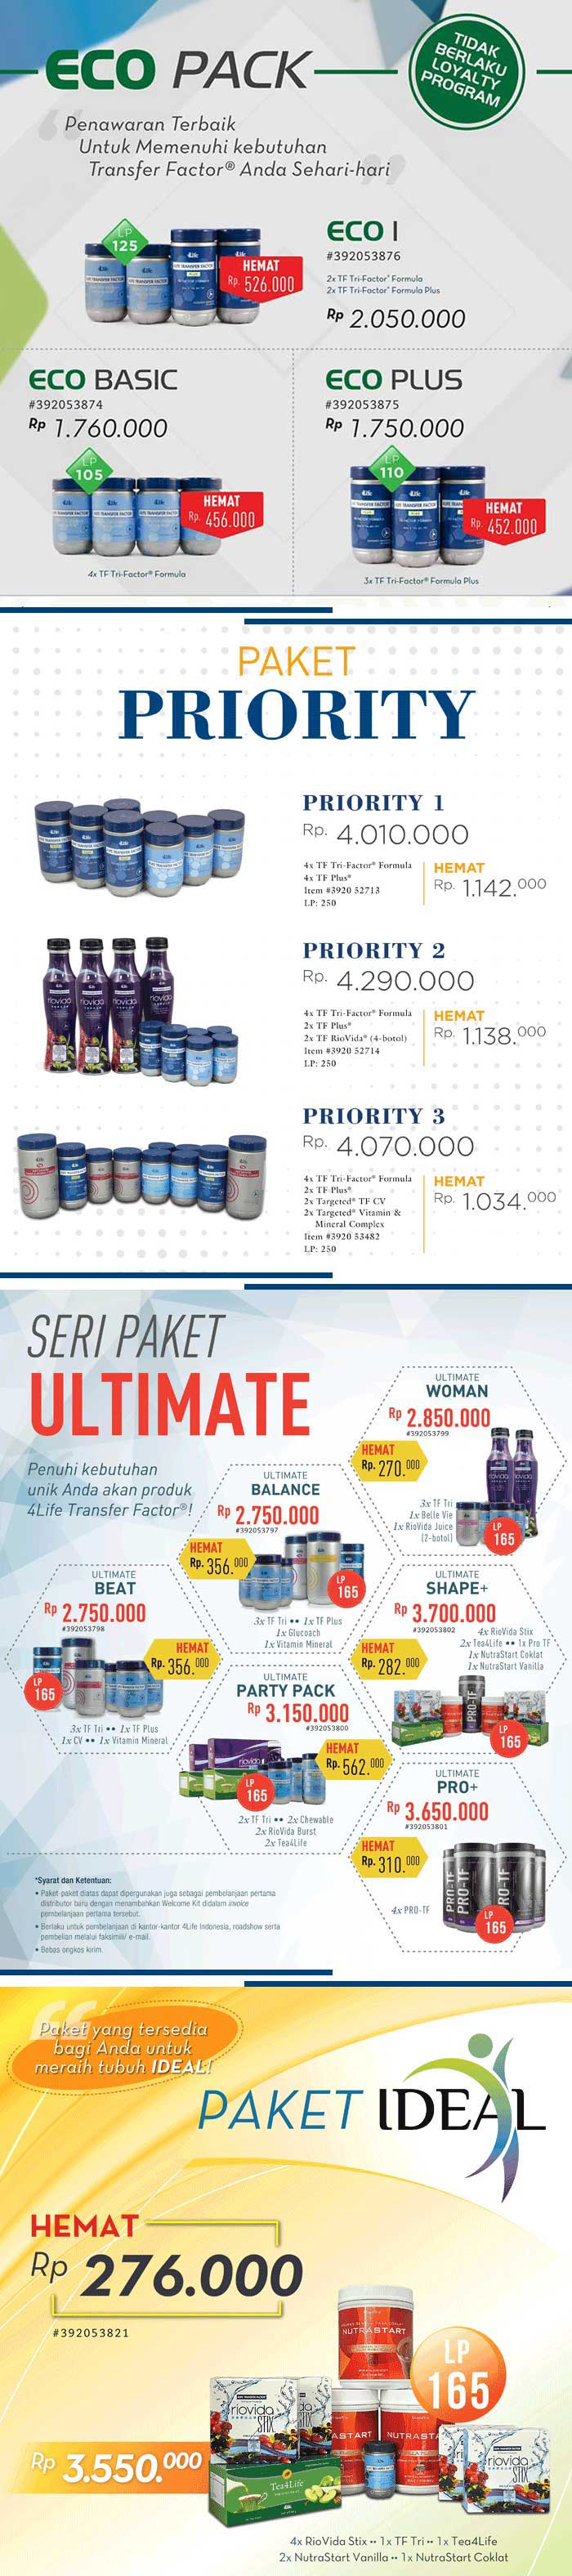 4Life Transfer Factor - Paket Loyalty Basic Plus Program